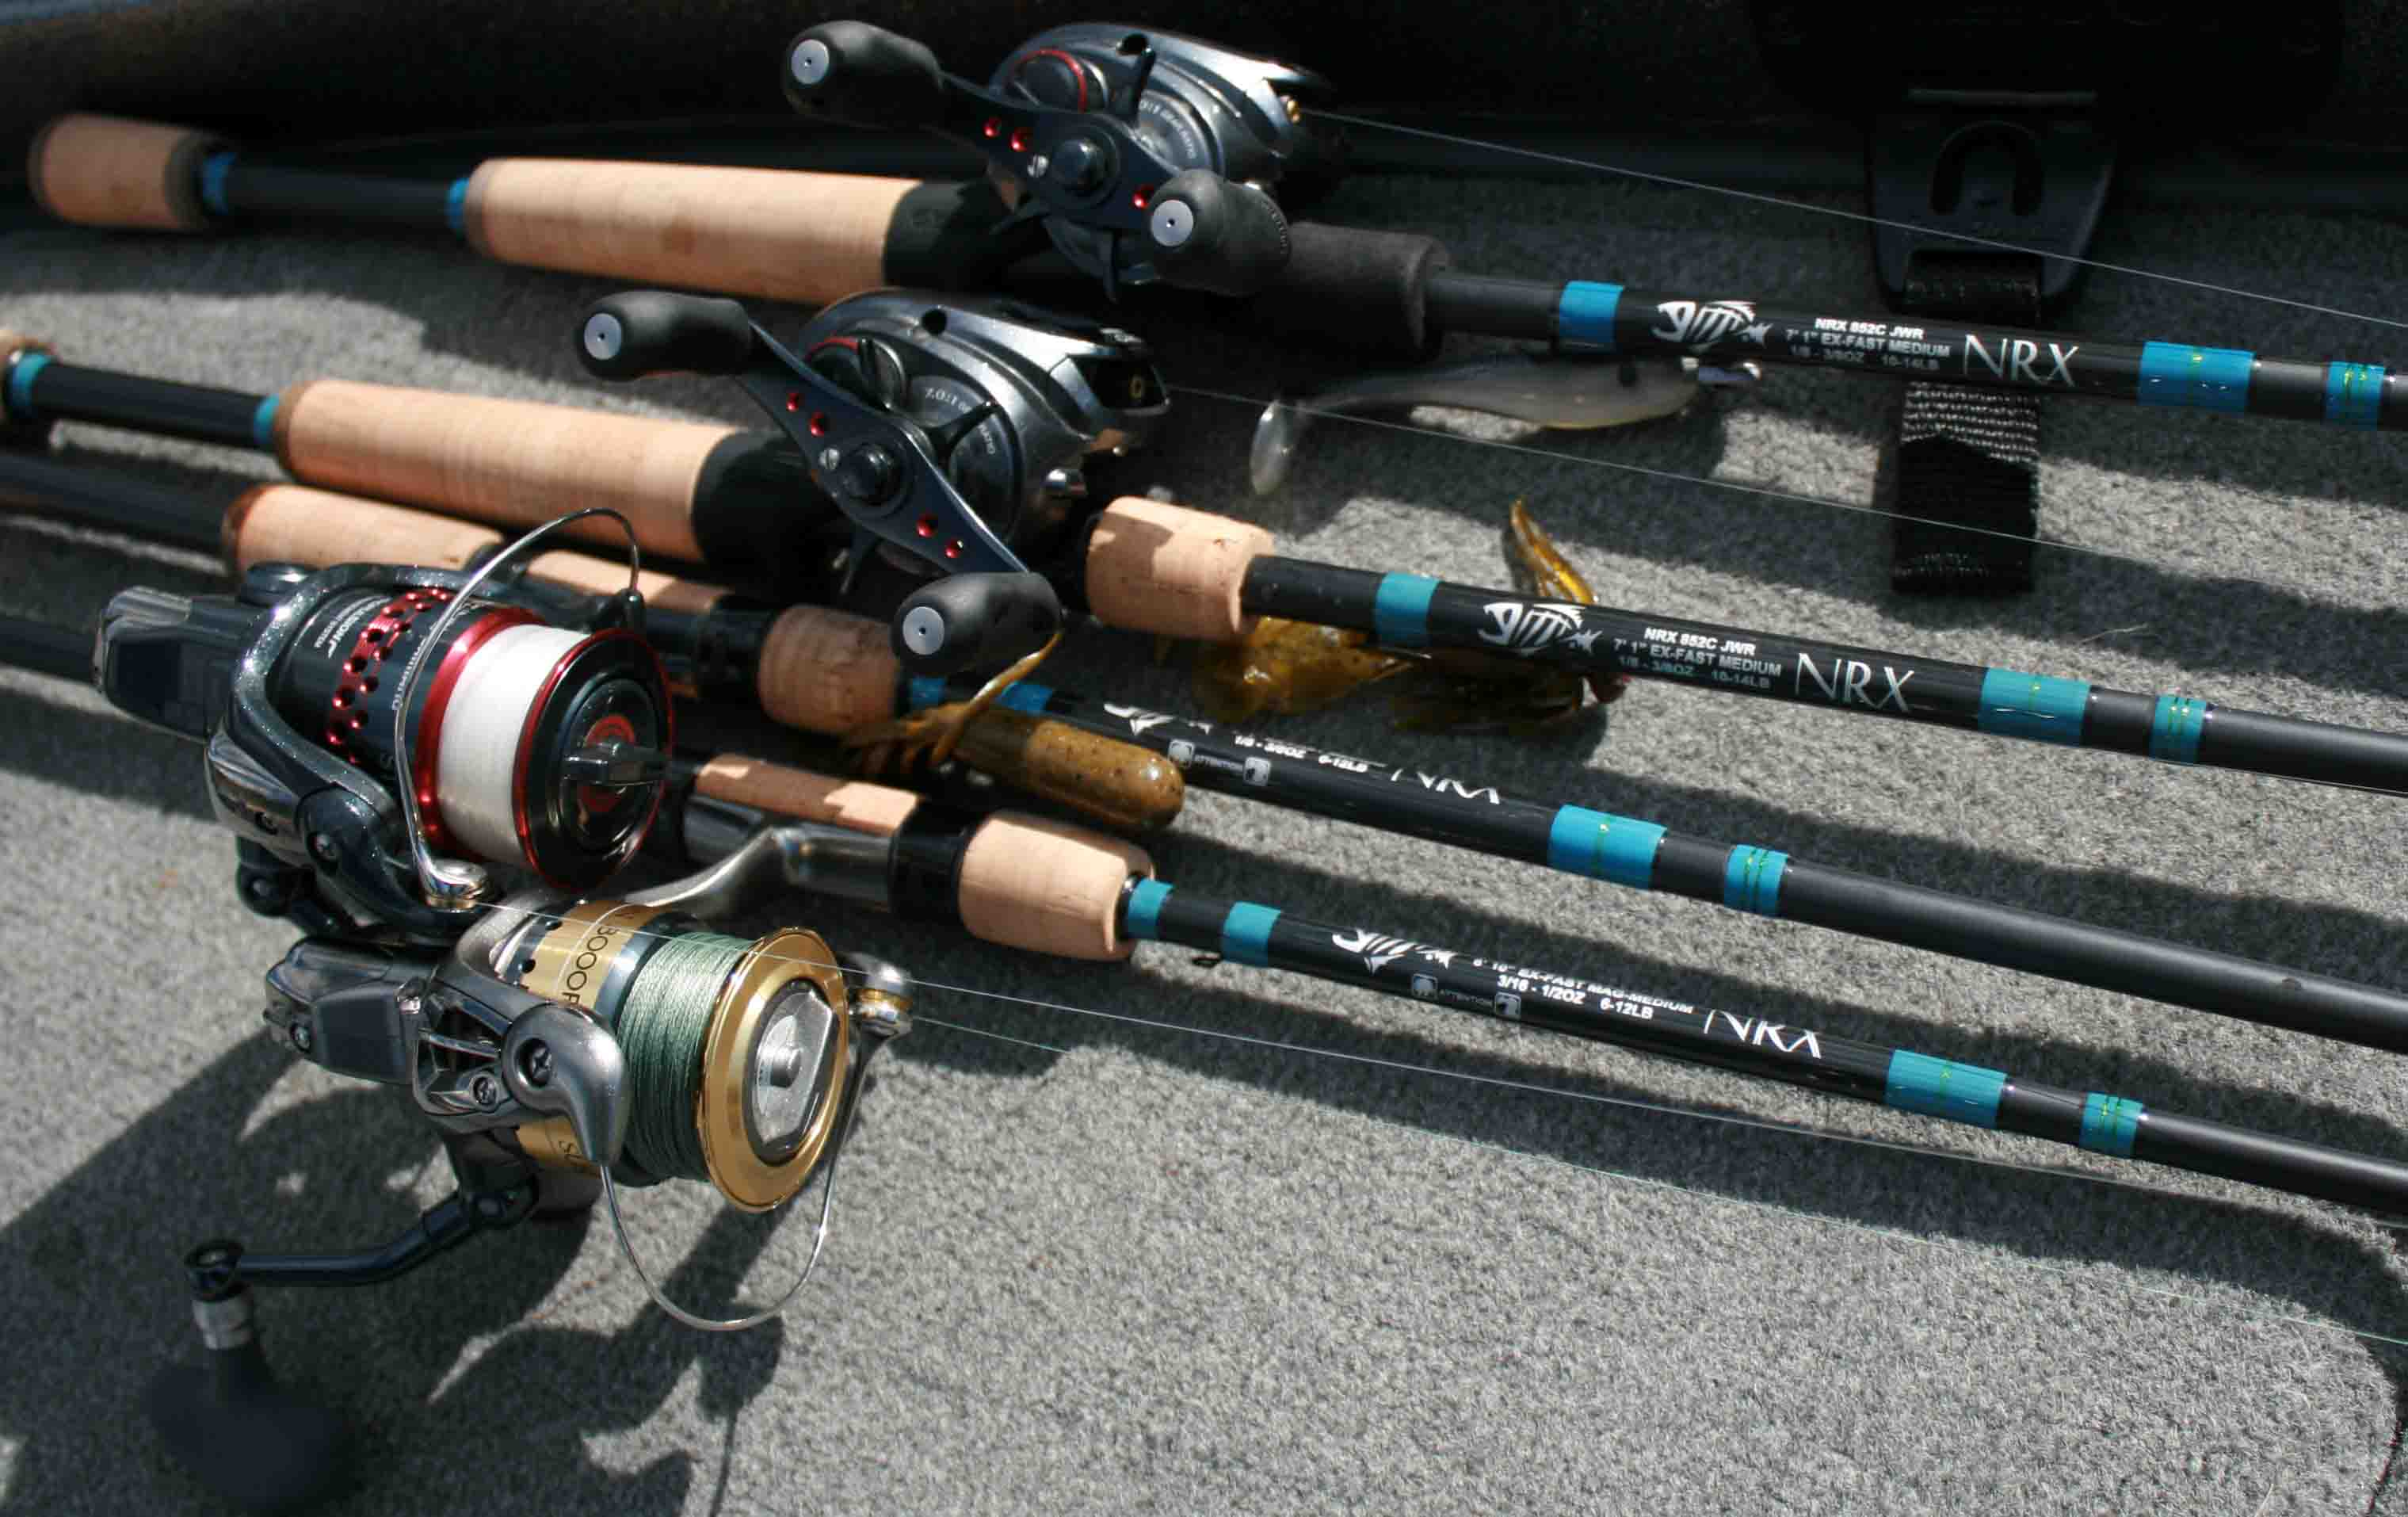 gustafson outdoors - home - what's going on? - g. loomis visit, Fishing Rod